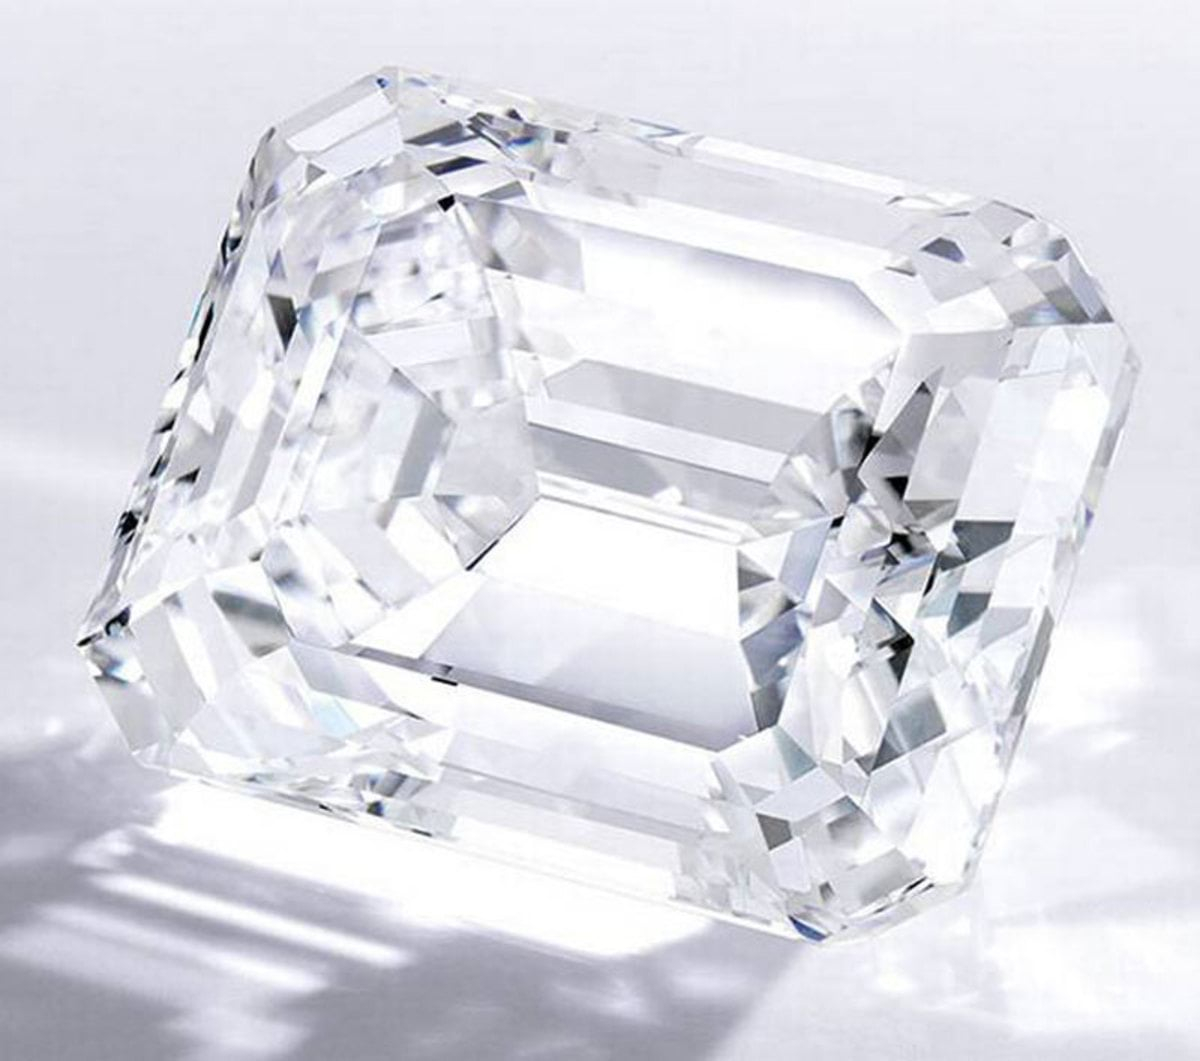 ألماسة Perfect Diamond